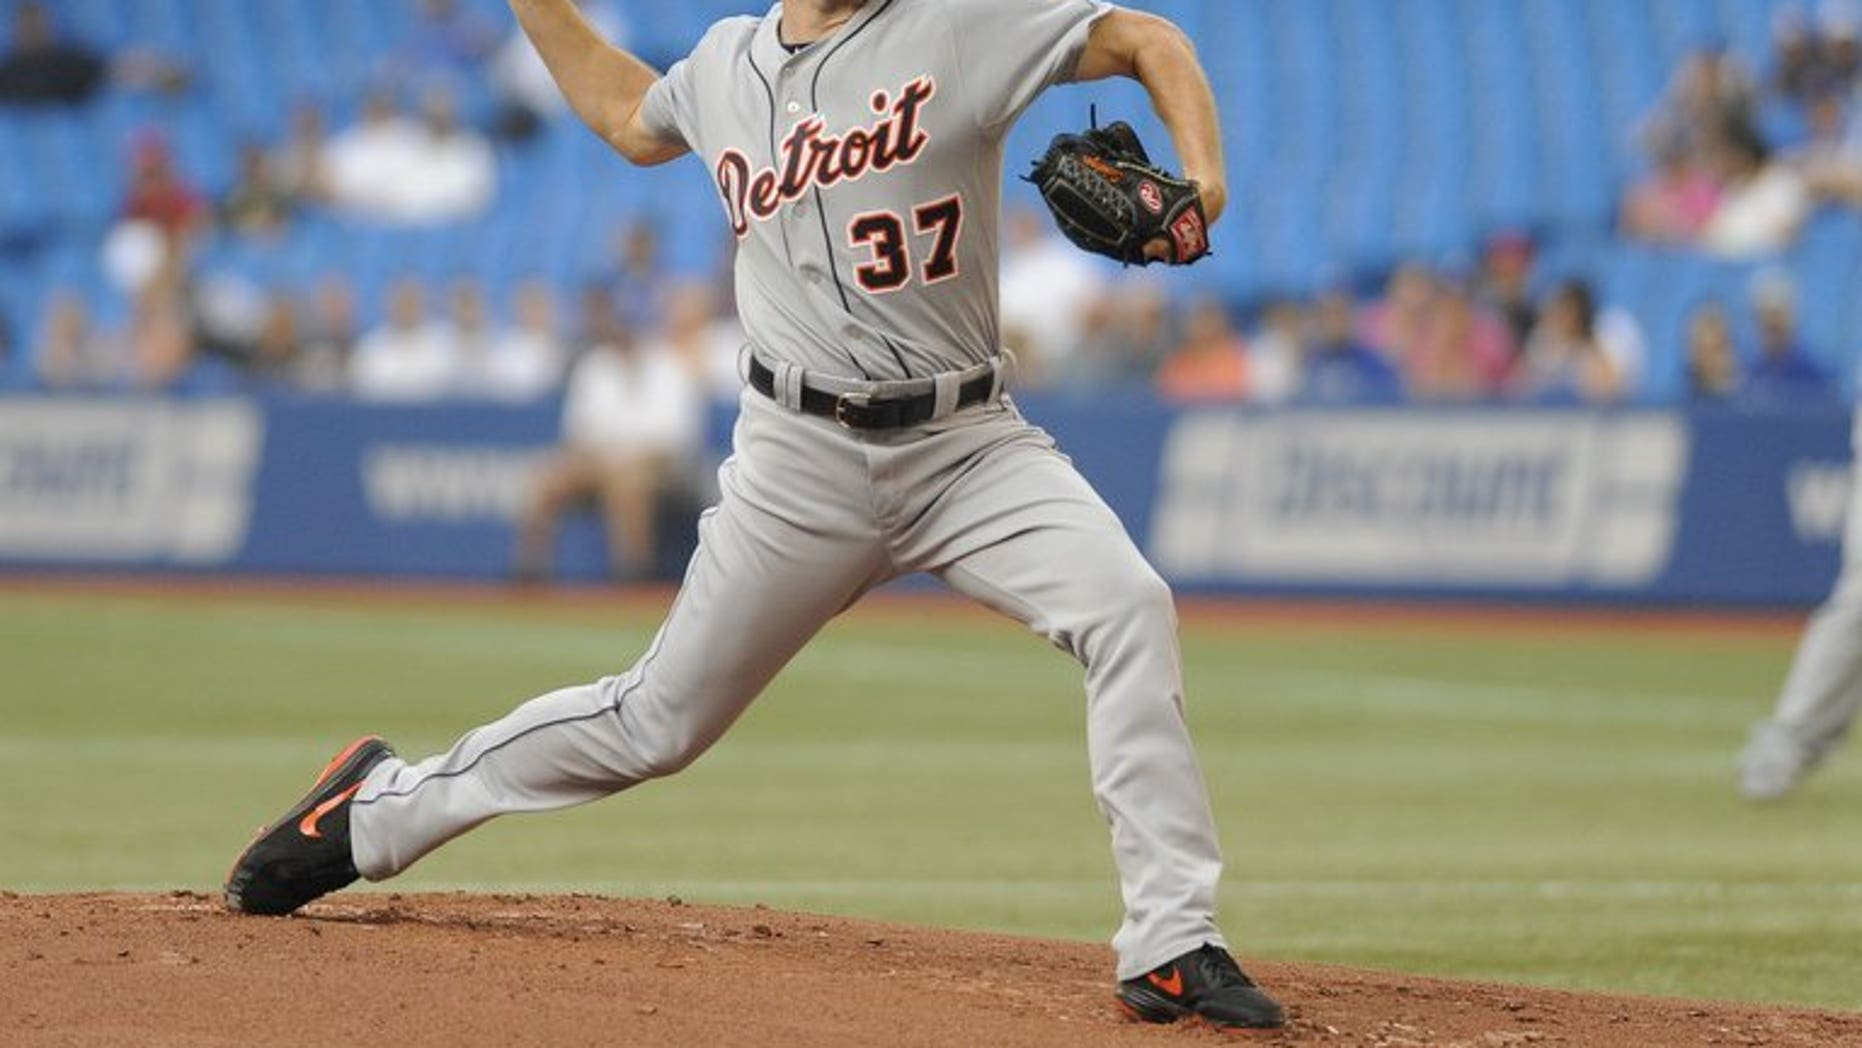 Max Scherzer of the Detroit Tigers pitches during the game against the Toronto Blue Jays on July 3, 2013. He pitched 6 1/3 strong innings in a 6-2 victory over Toronto to become the first MLB hurler since 1986 to open a season 13-0.